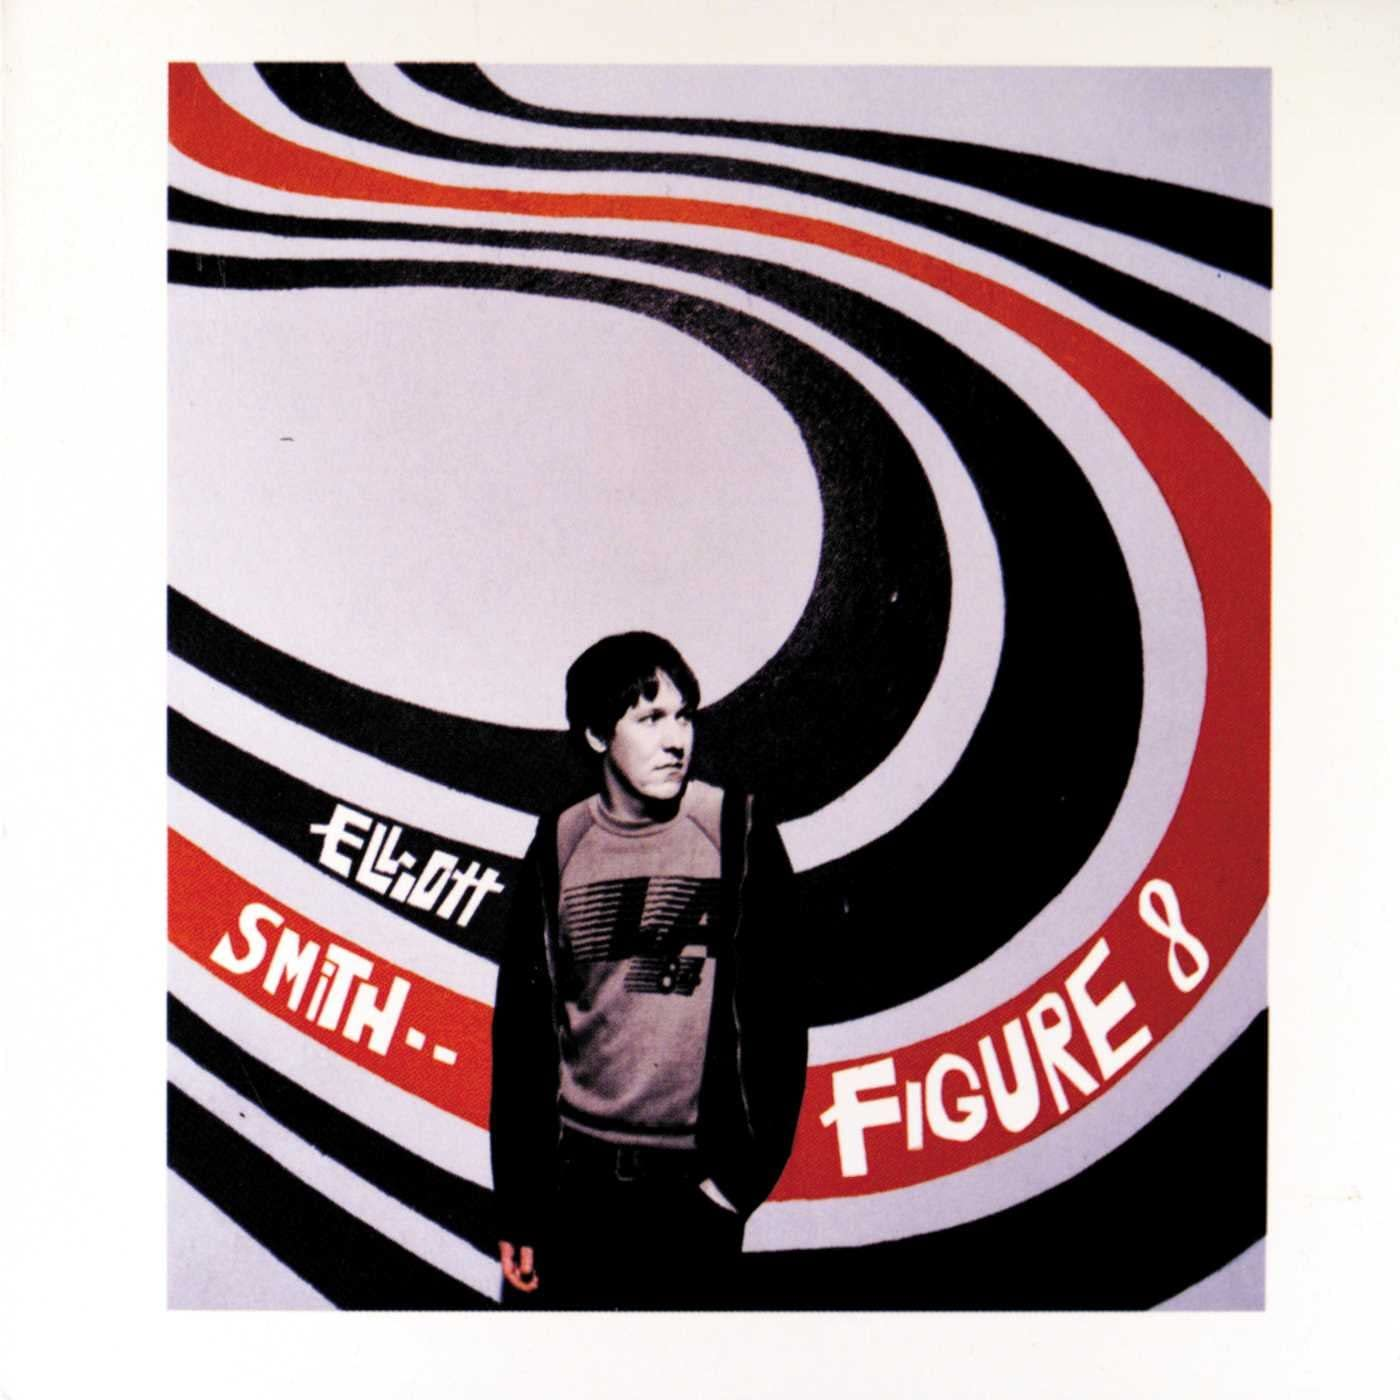 Elliott Smith - Figure 8 LP - Vinyl